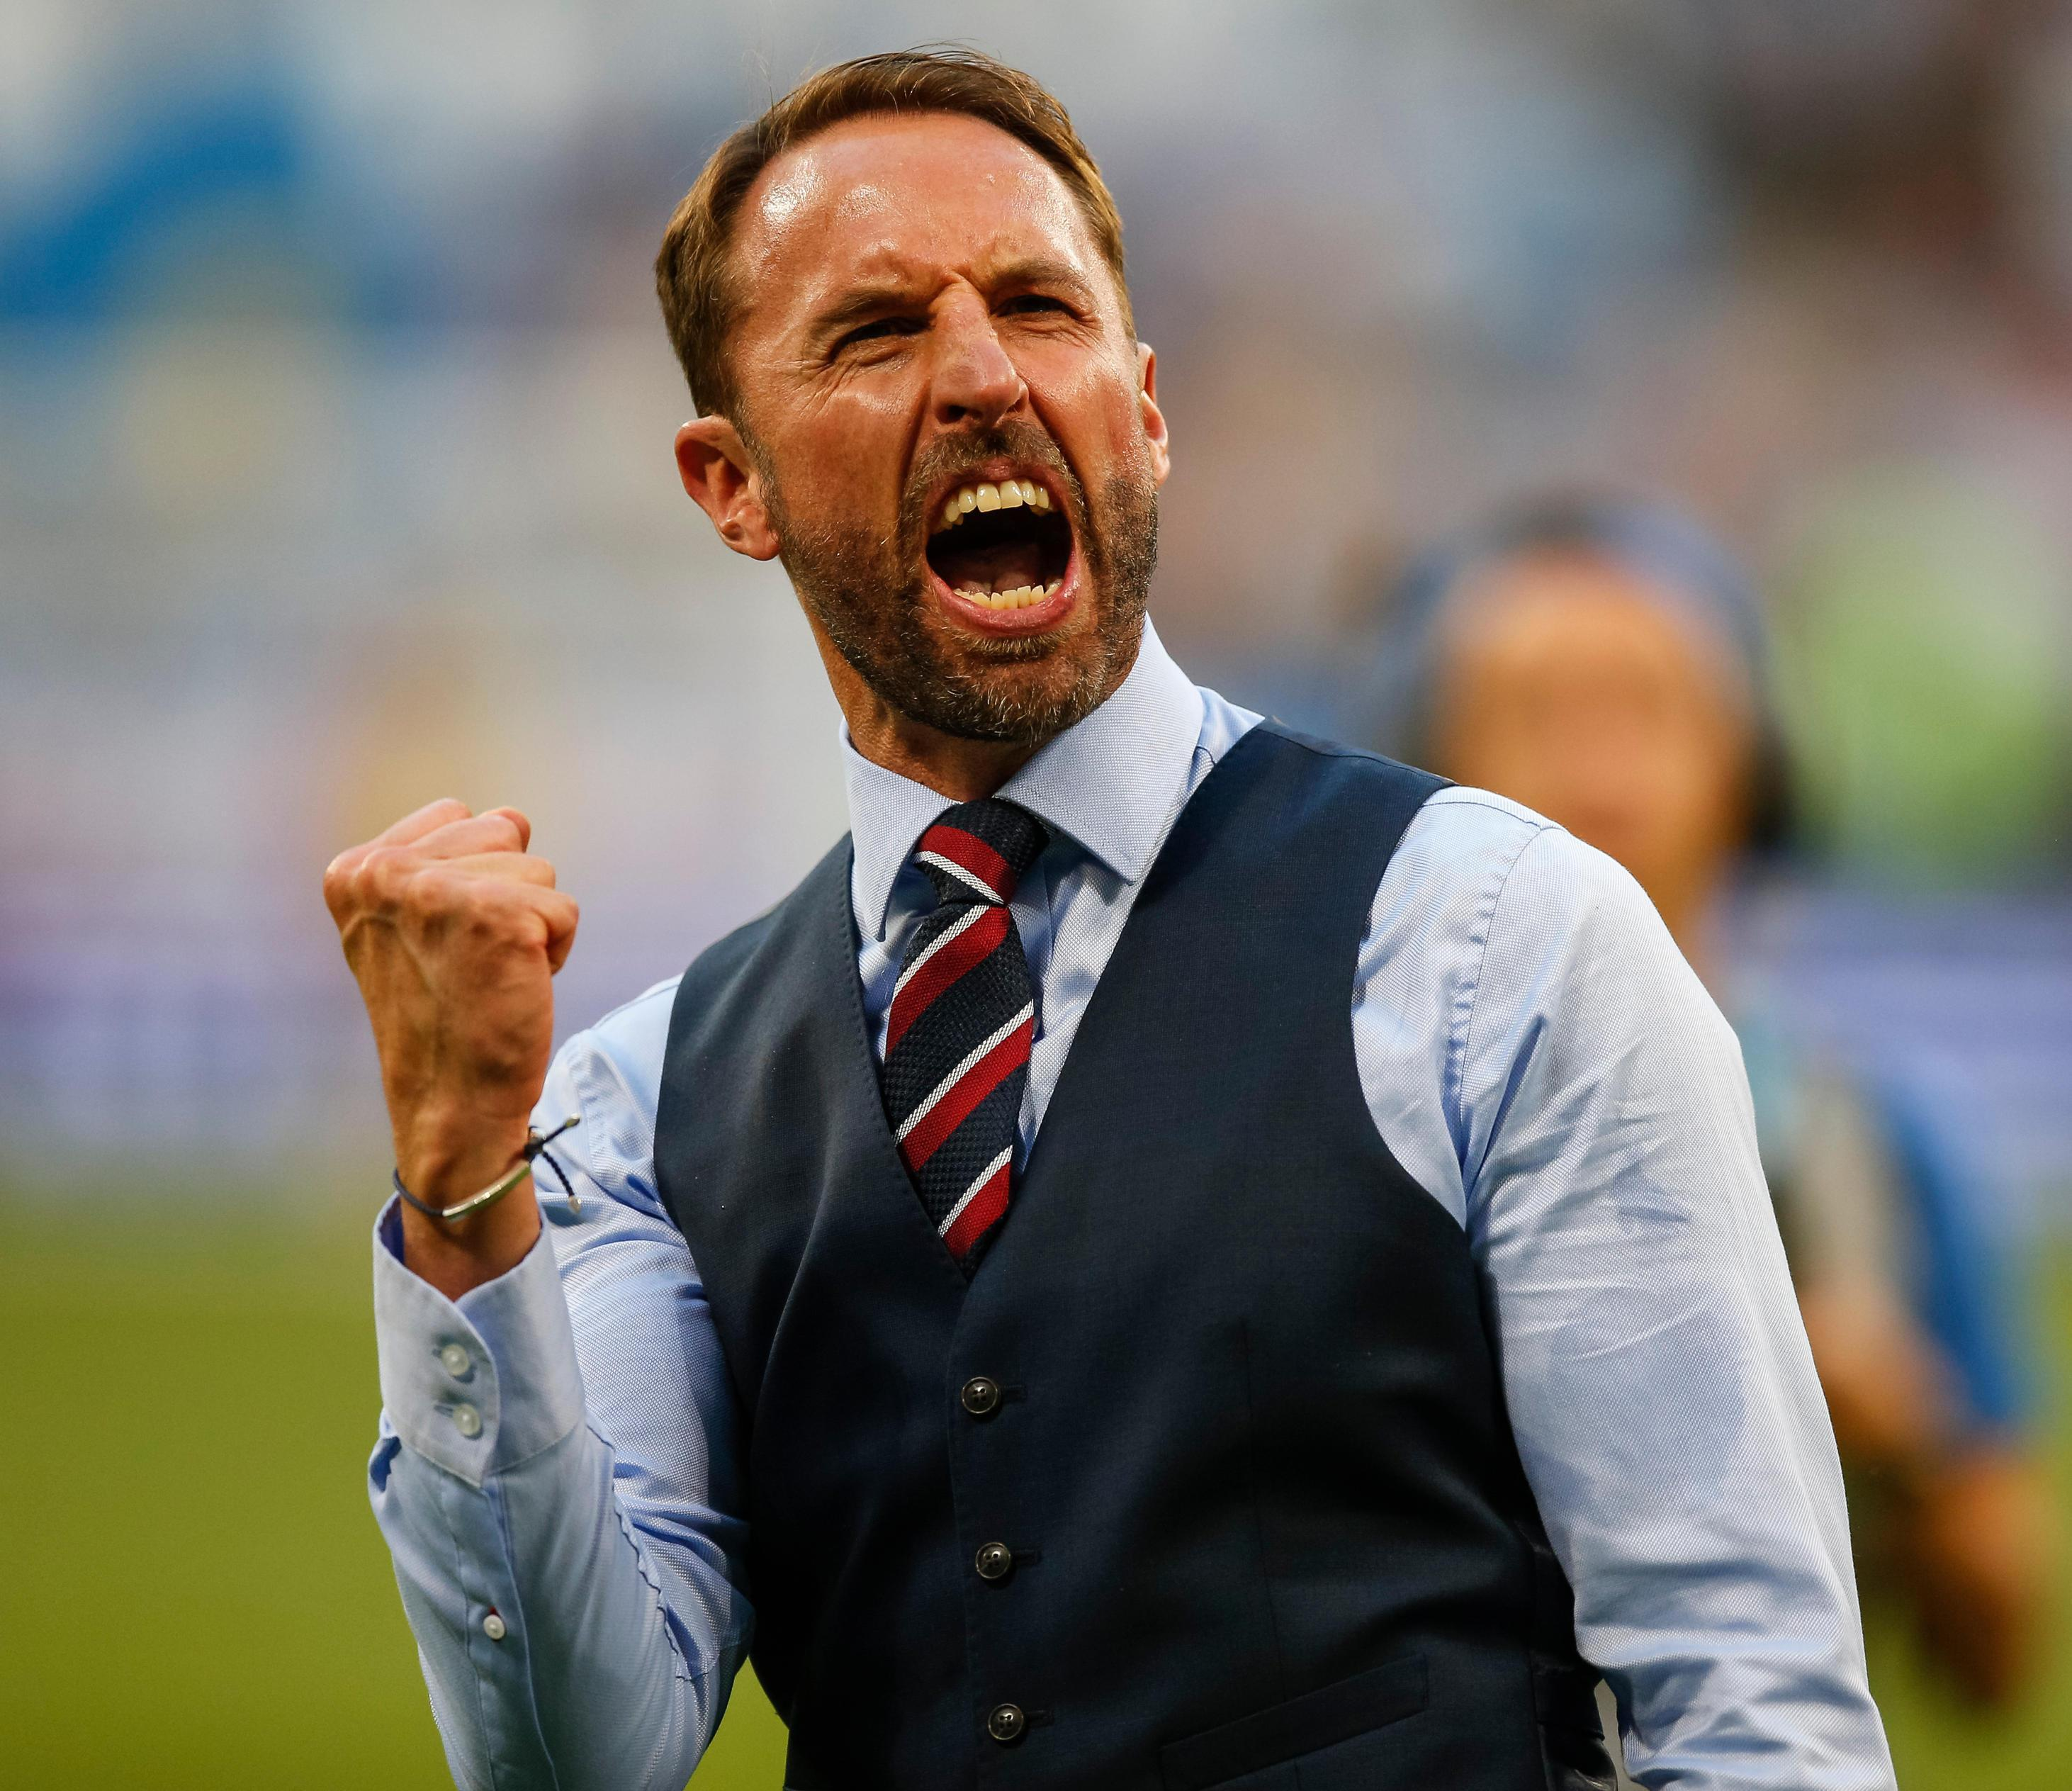 Gareth Southgate is set to stay on as England manager until the next World Cup